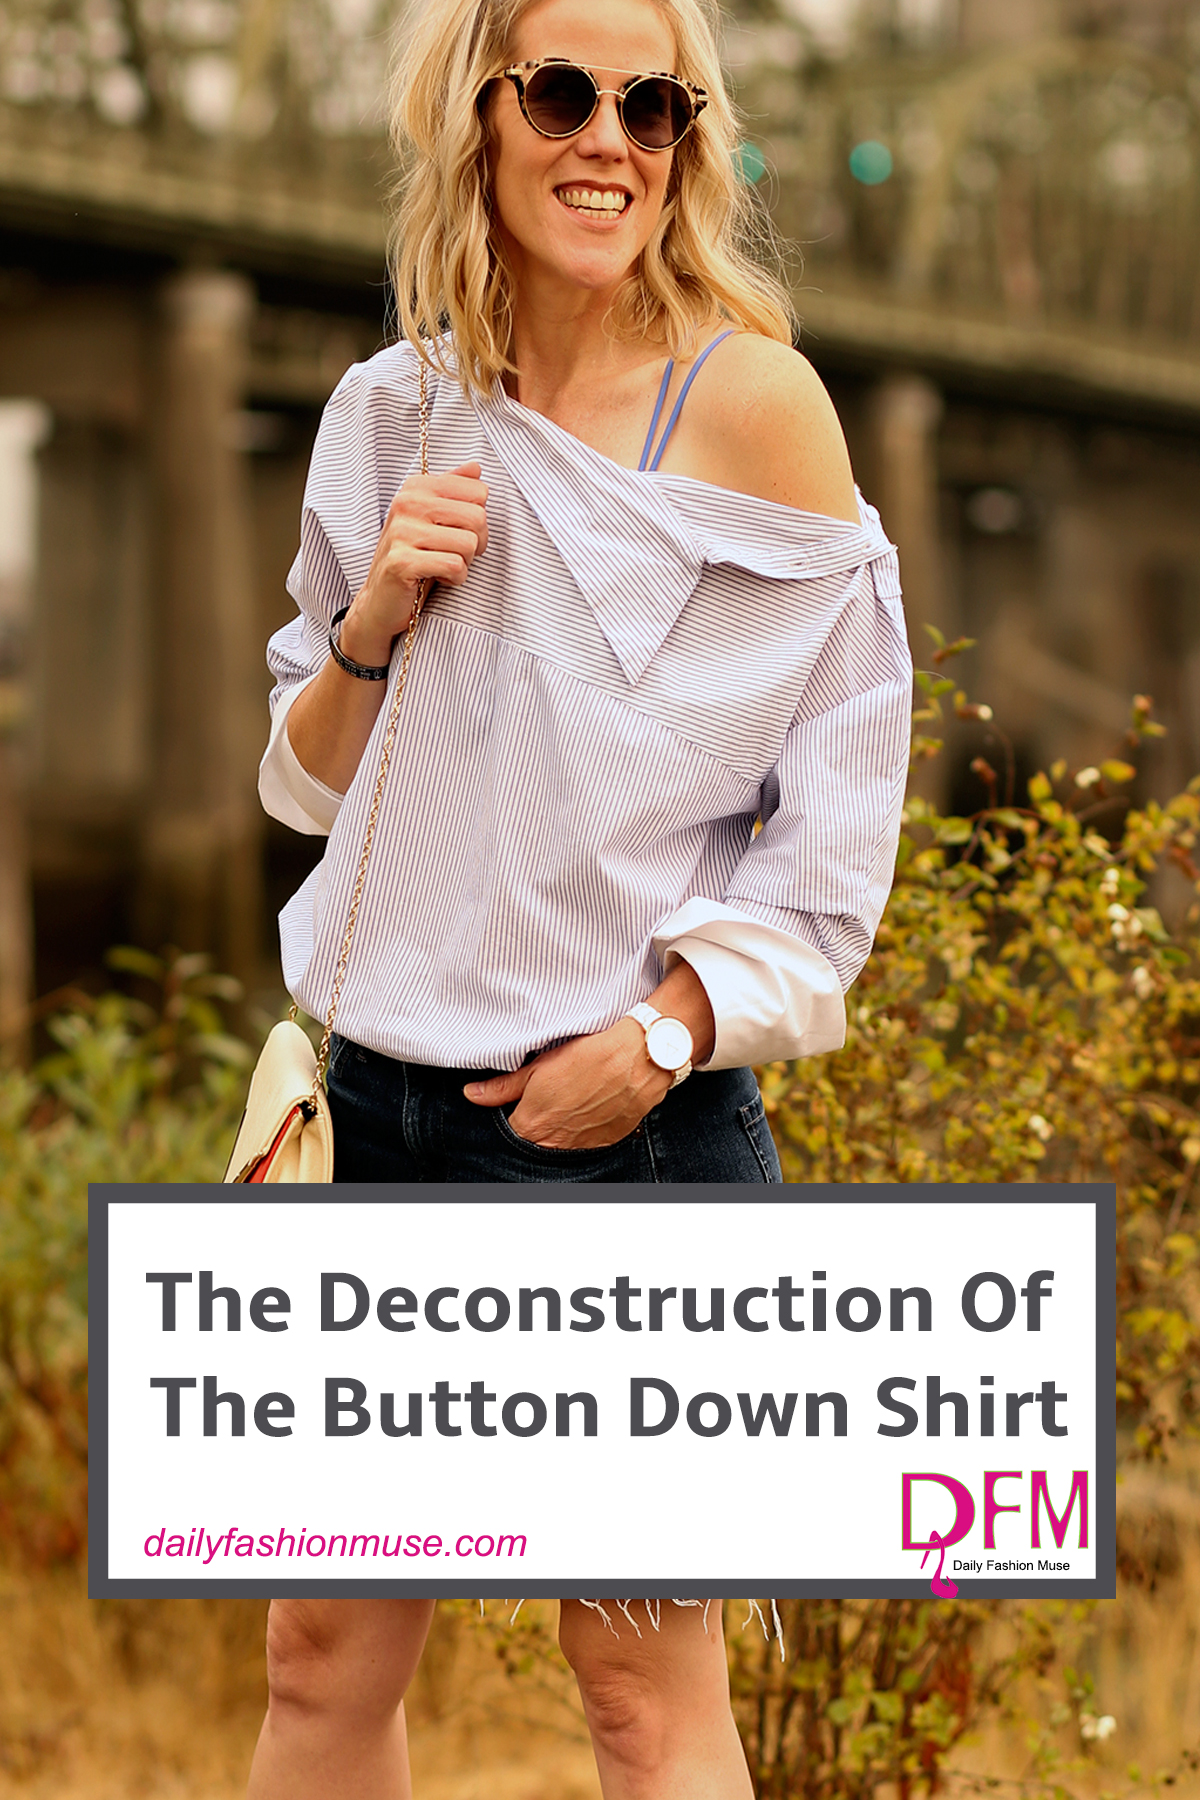 The backbone of women's wardrobe should be a button down shirt. It works in all seasons, times of day and gender. Deconstruction brings it to another level. -Daily Fashion Muse